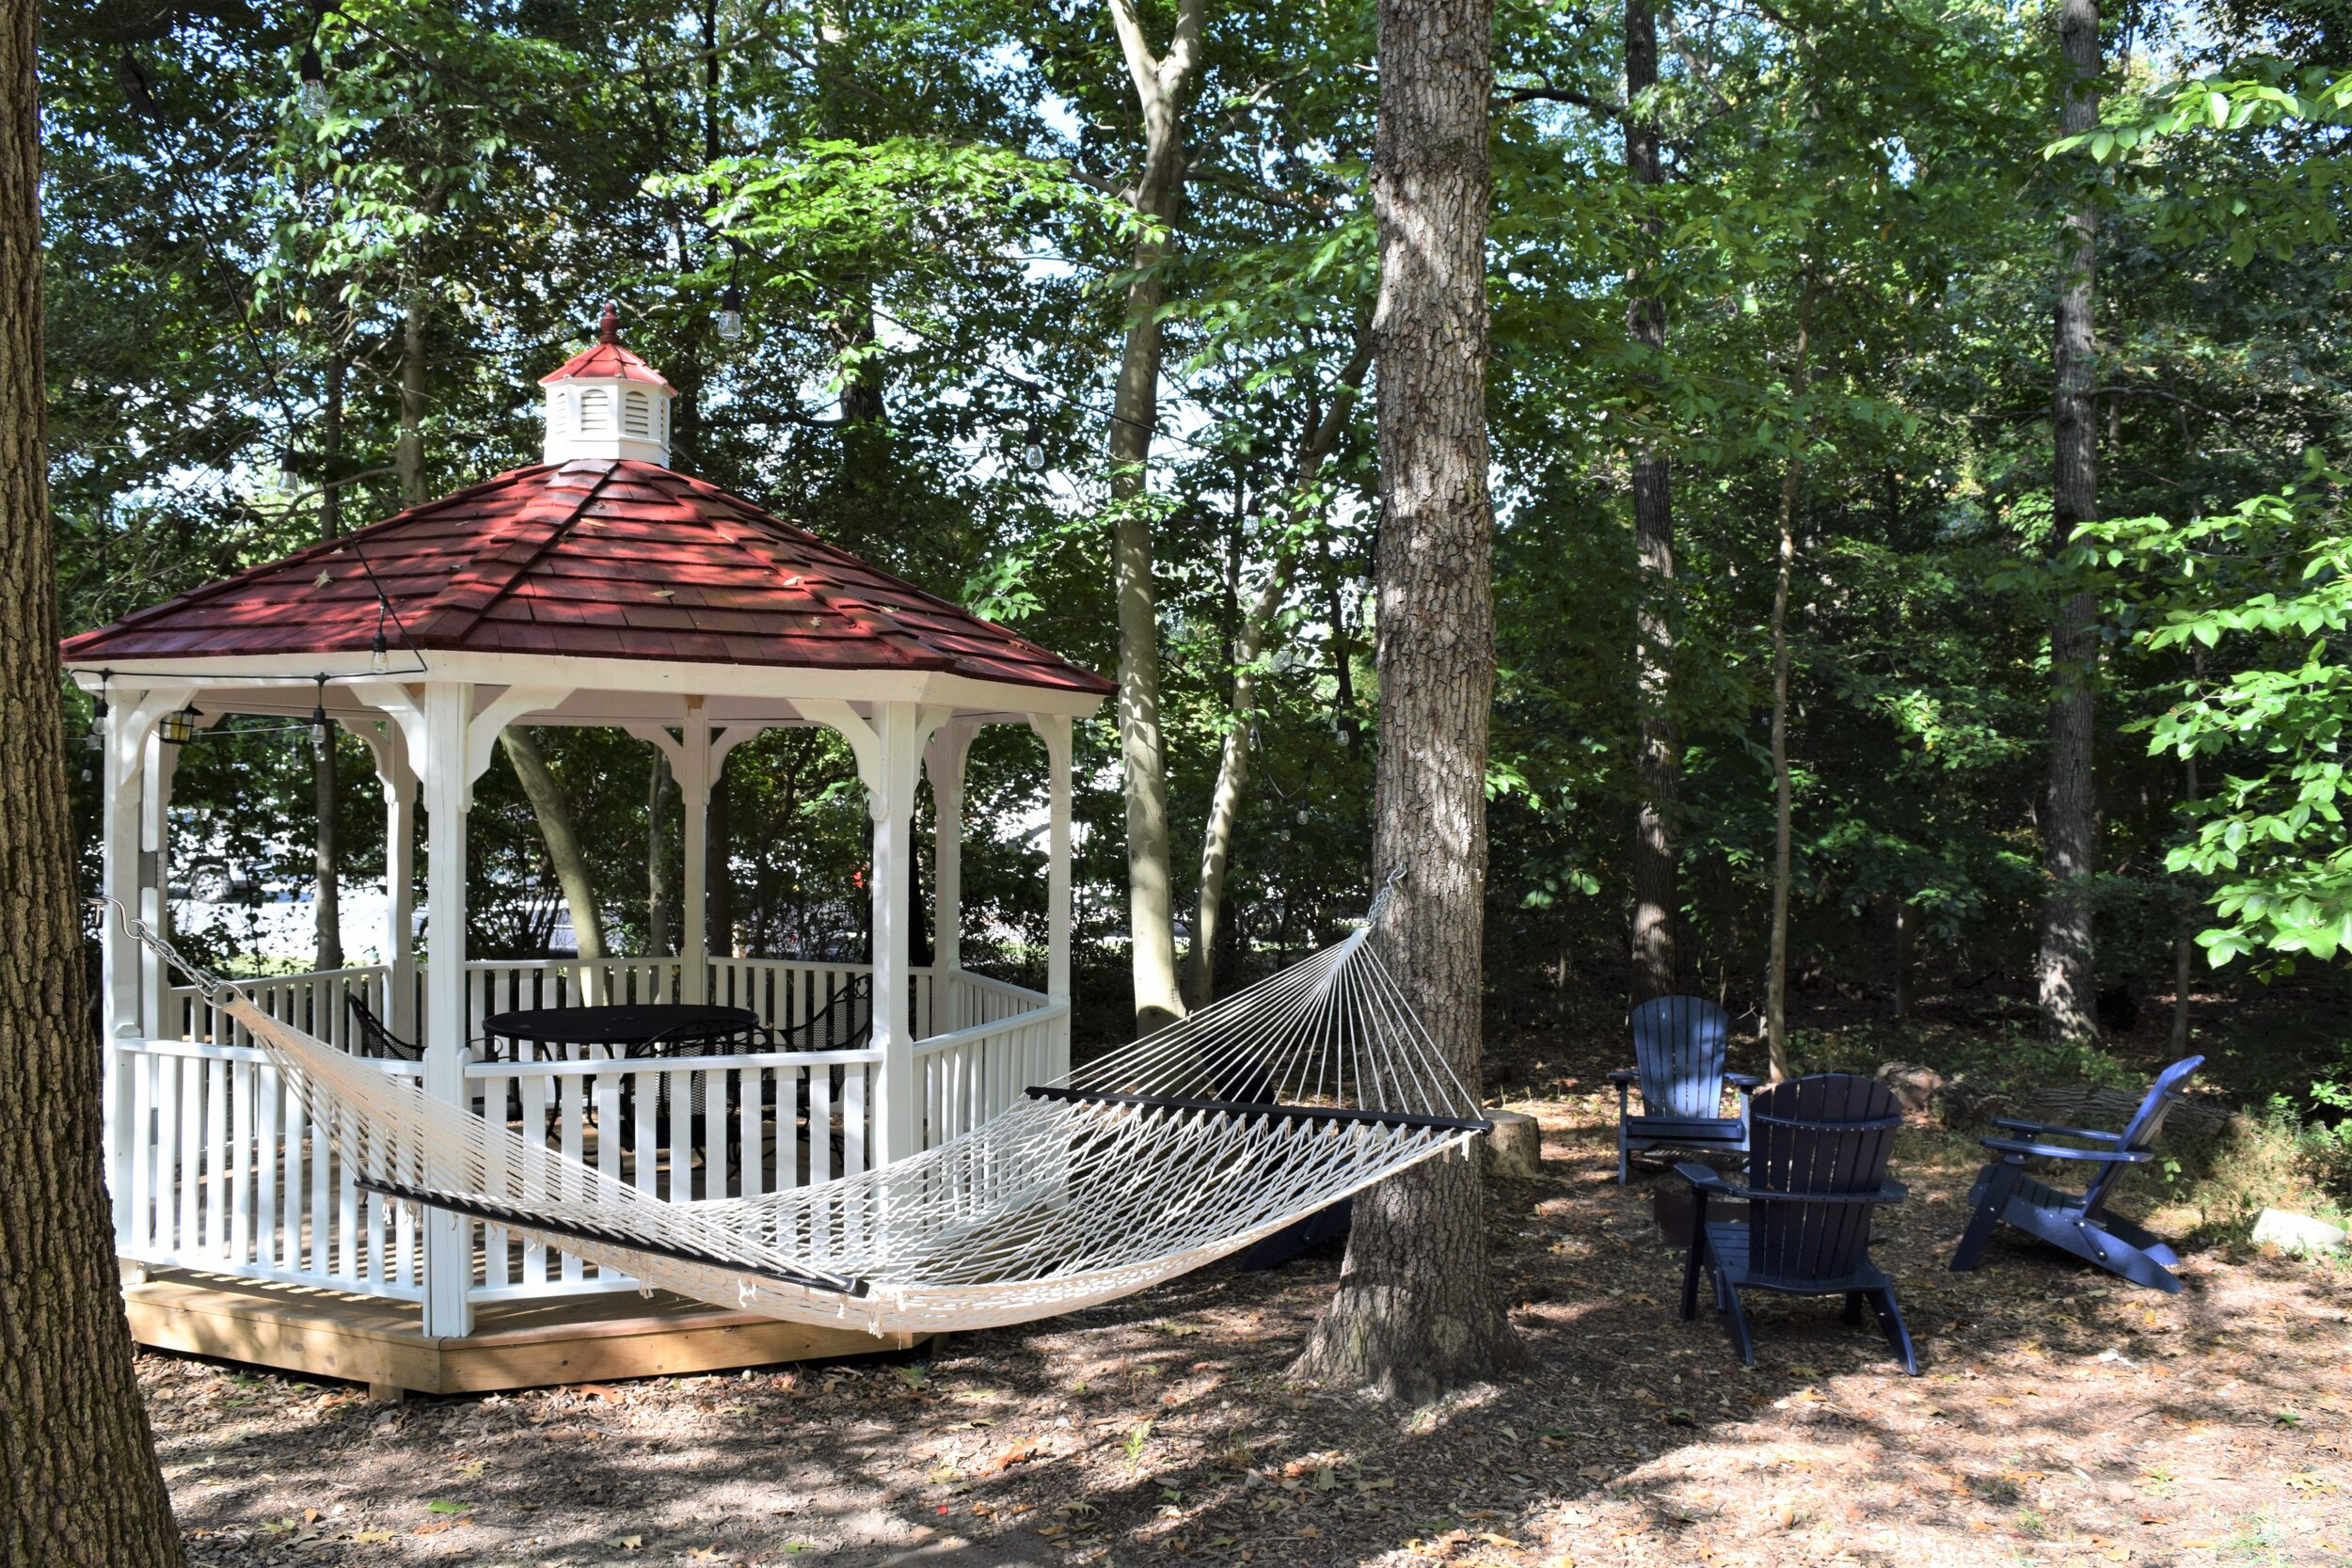 Premium tent site - hammock, gazebo, circle of Adirondack chairs